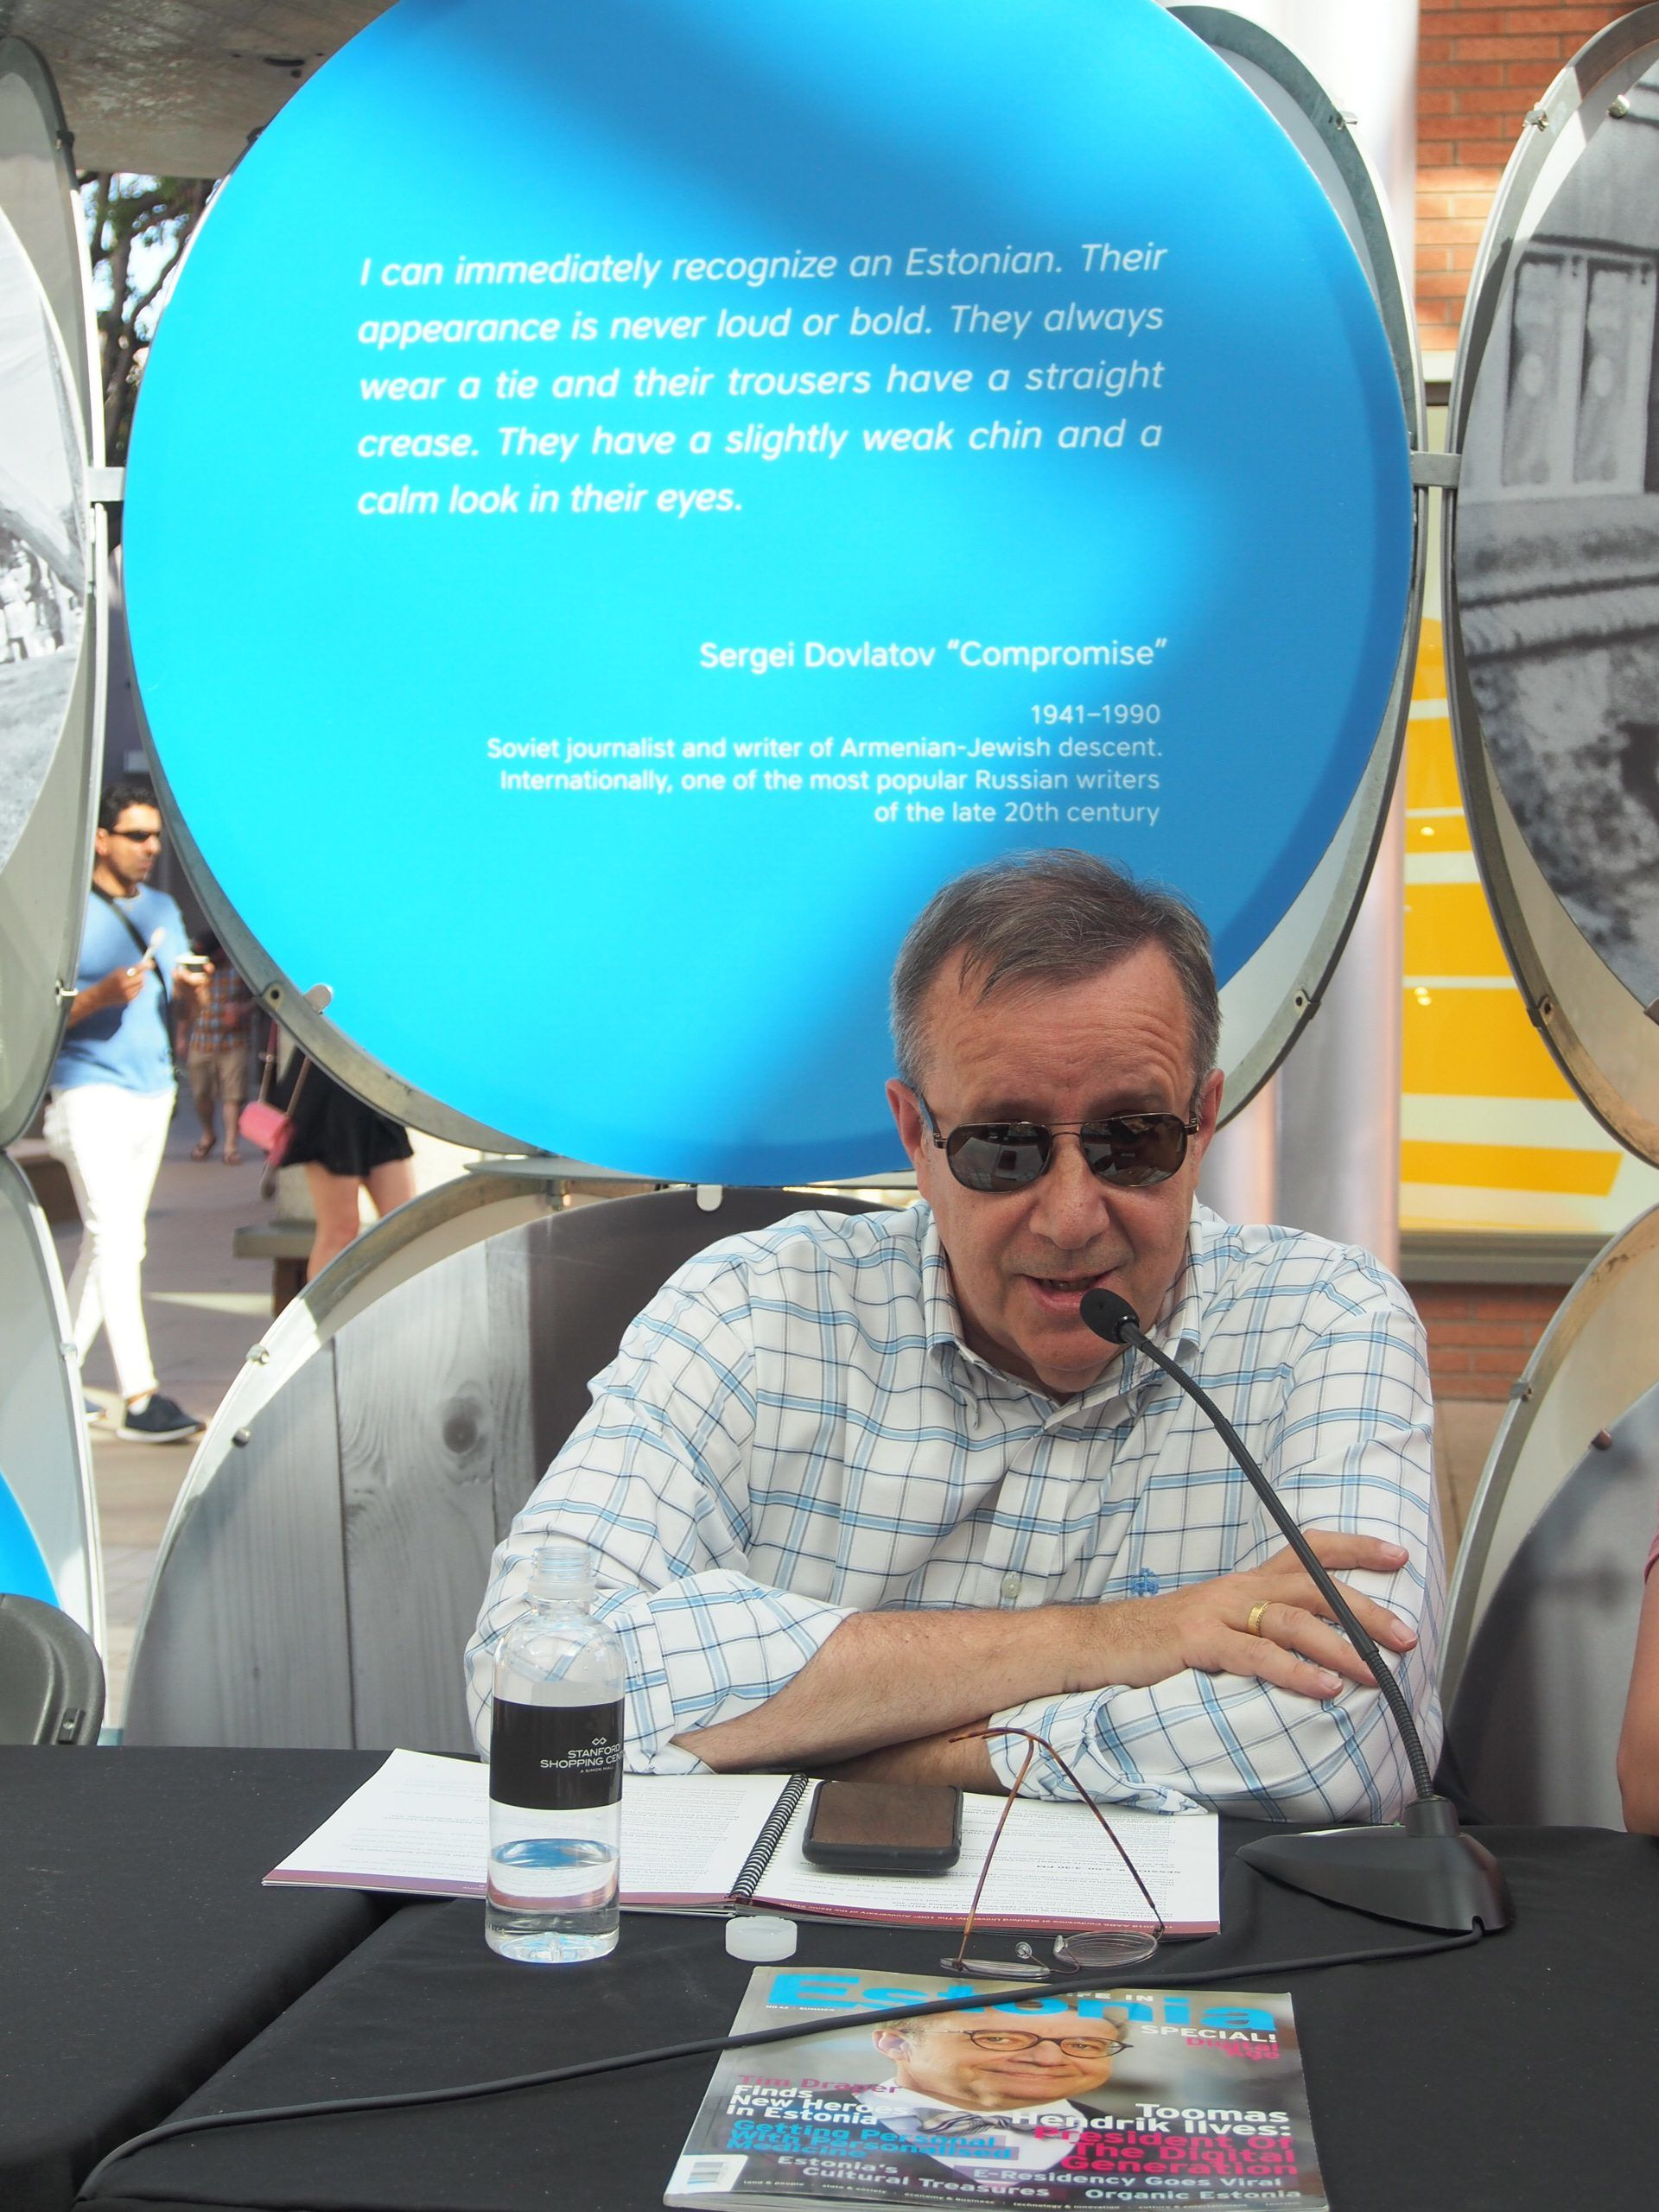 The former president of Estonia, Toomas Hendrik Ilves, at the AABS Conference session held at the travelling exhibition. Photo by Ede Schank Tamkivi.